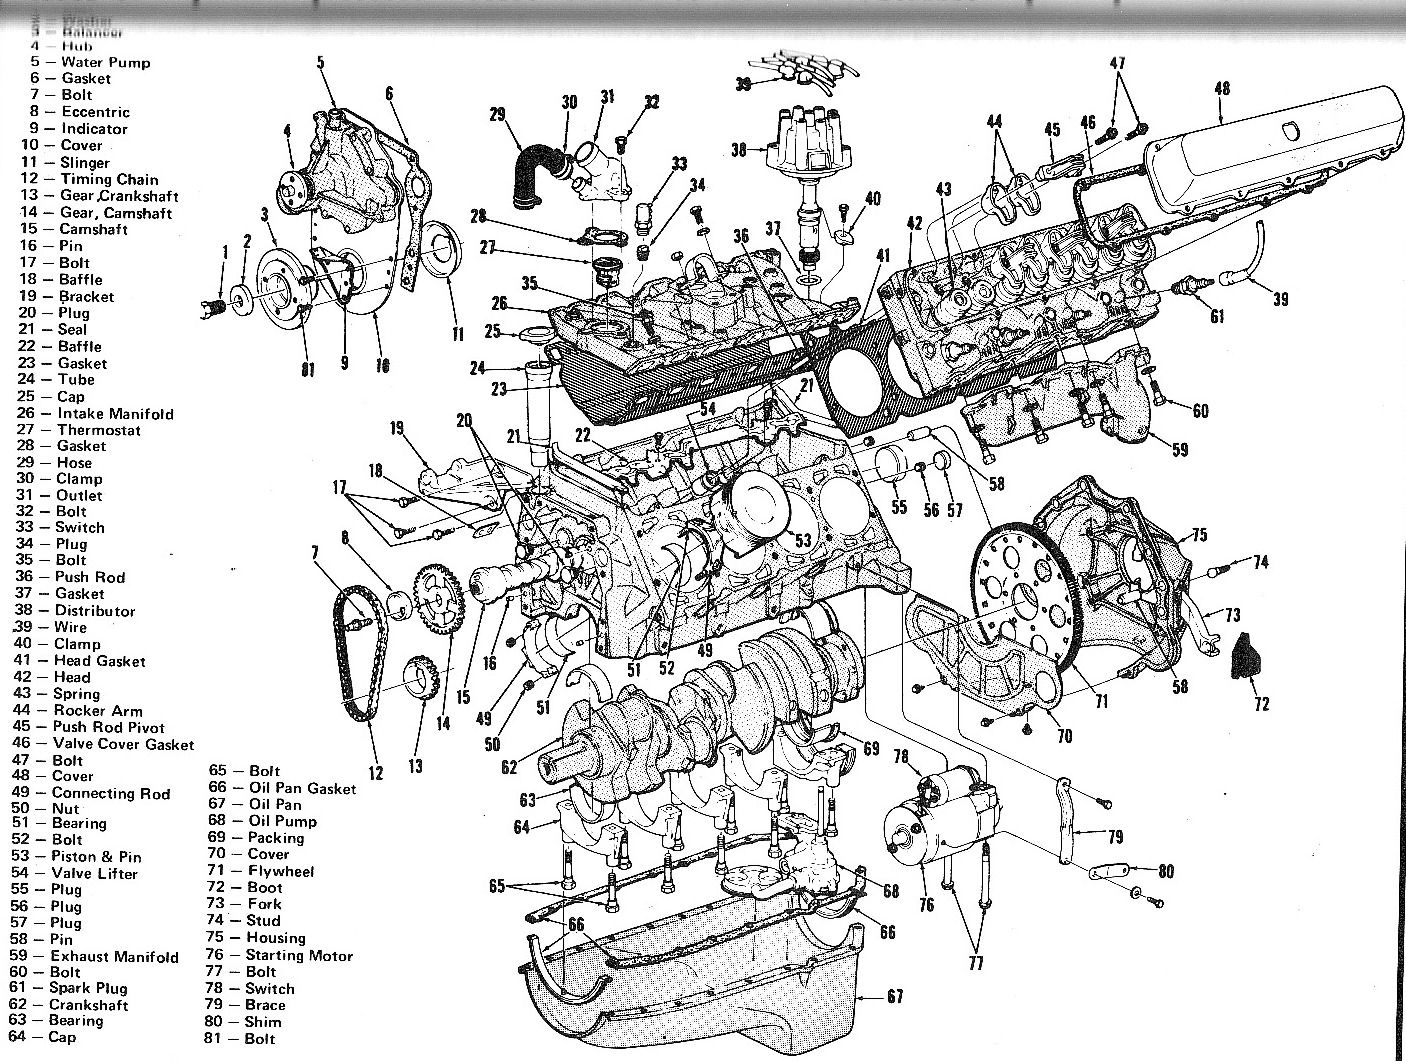 medium resolution of ford mustang 289 engine diagram oil electrical schematic wiring ford mustang 289 engine diagram oil